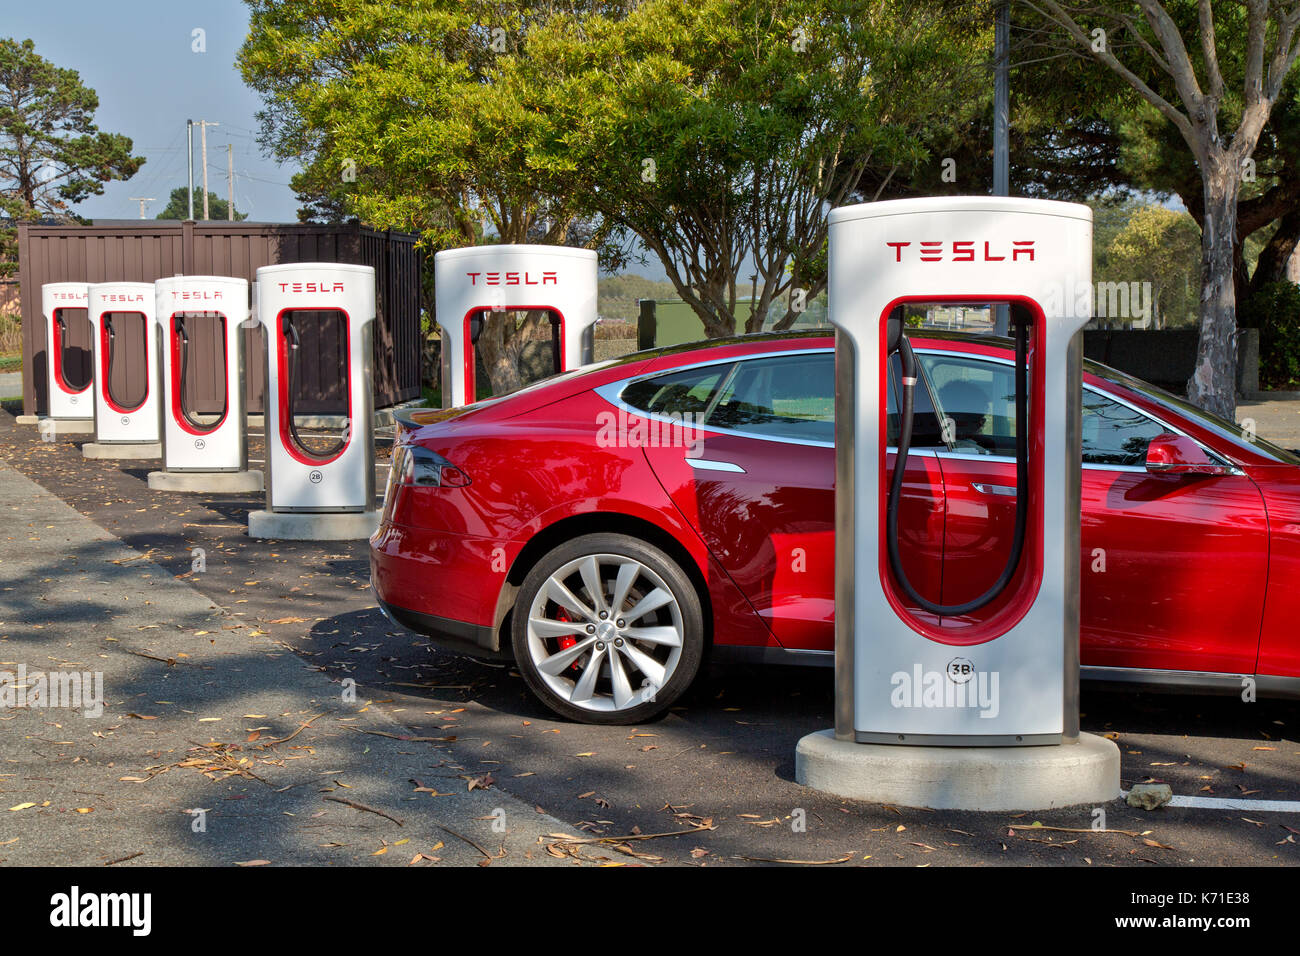 Tesla 'S'  sedan connected to 480 volt  Supercharger (fast charging)  Station. - Stock Image